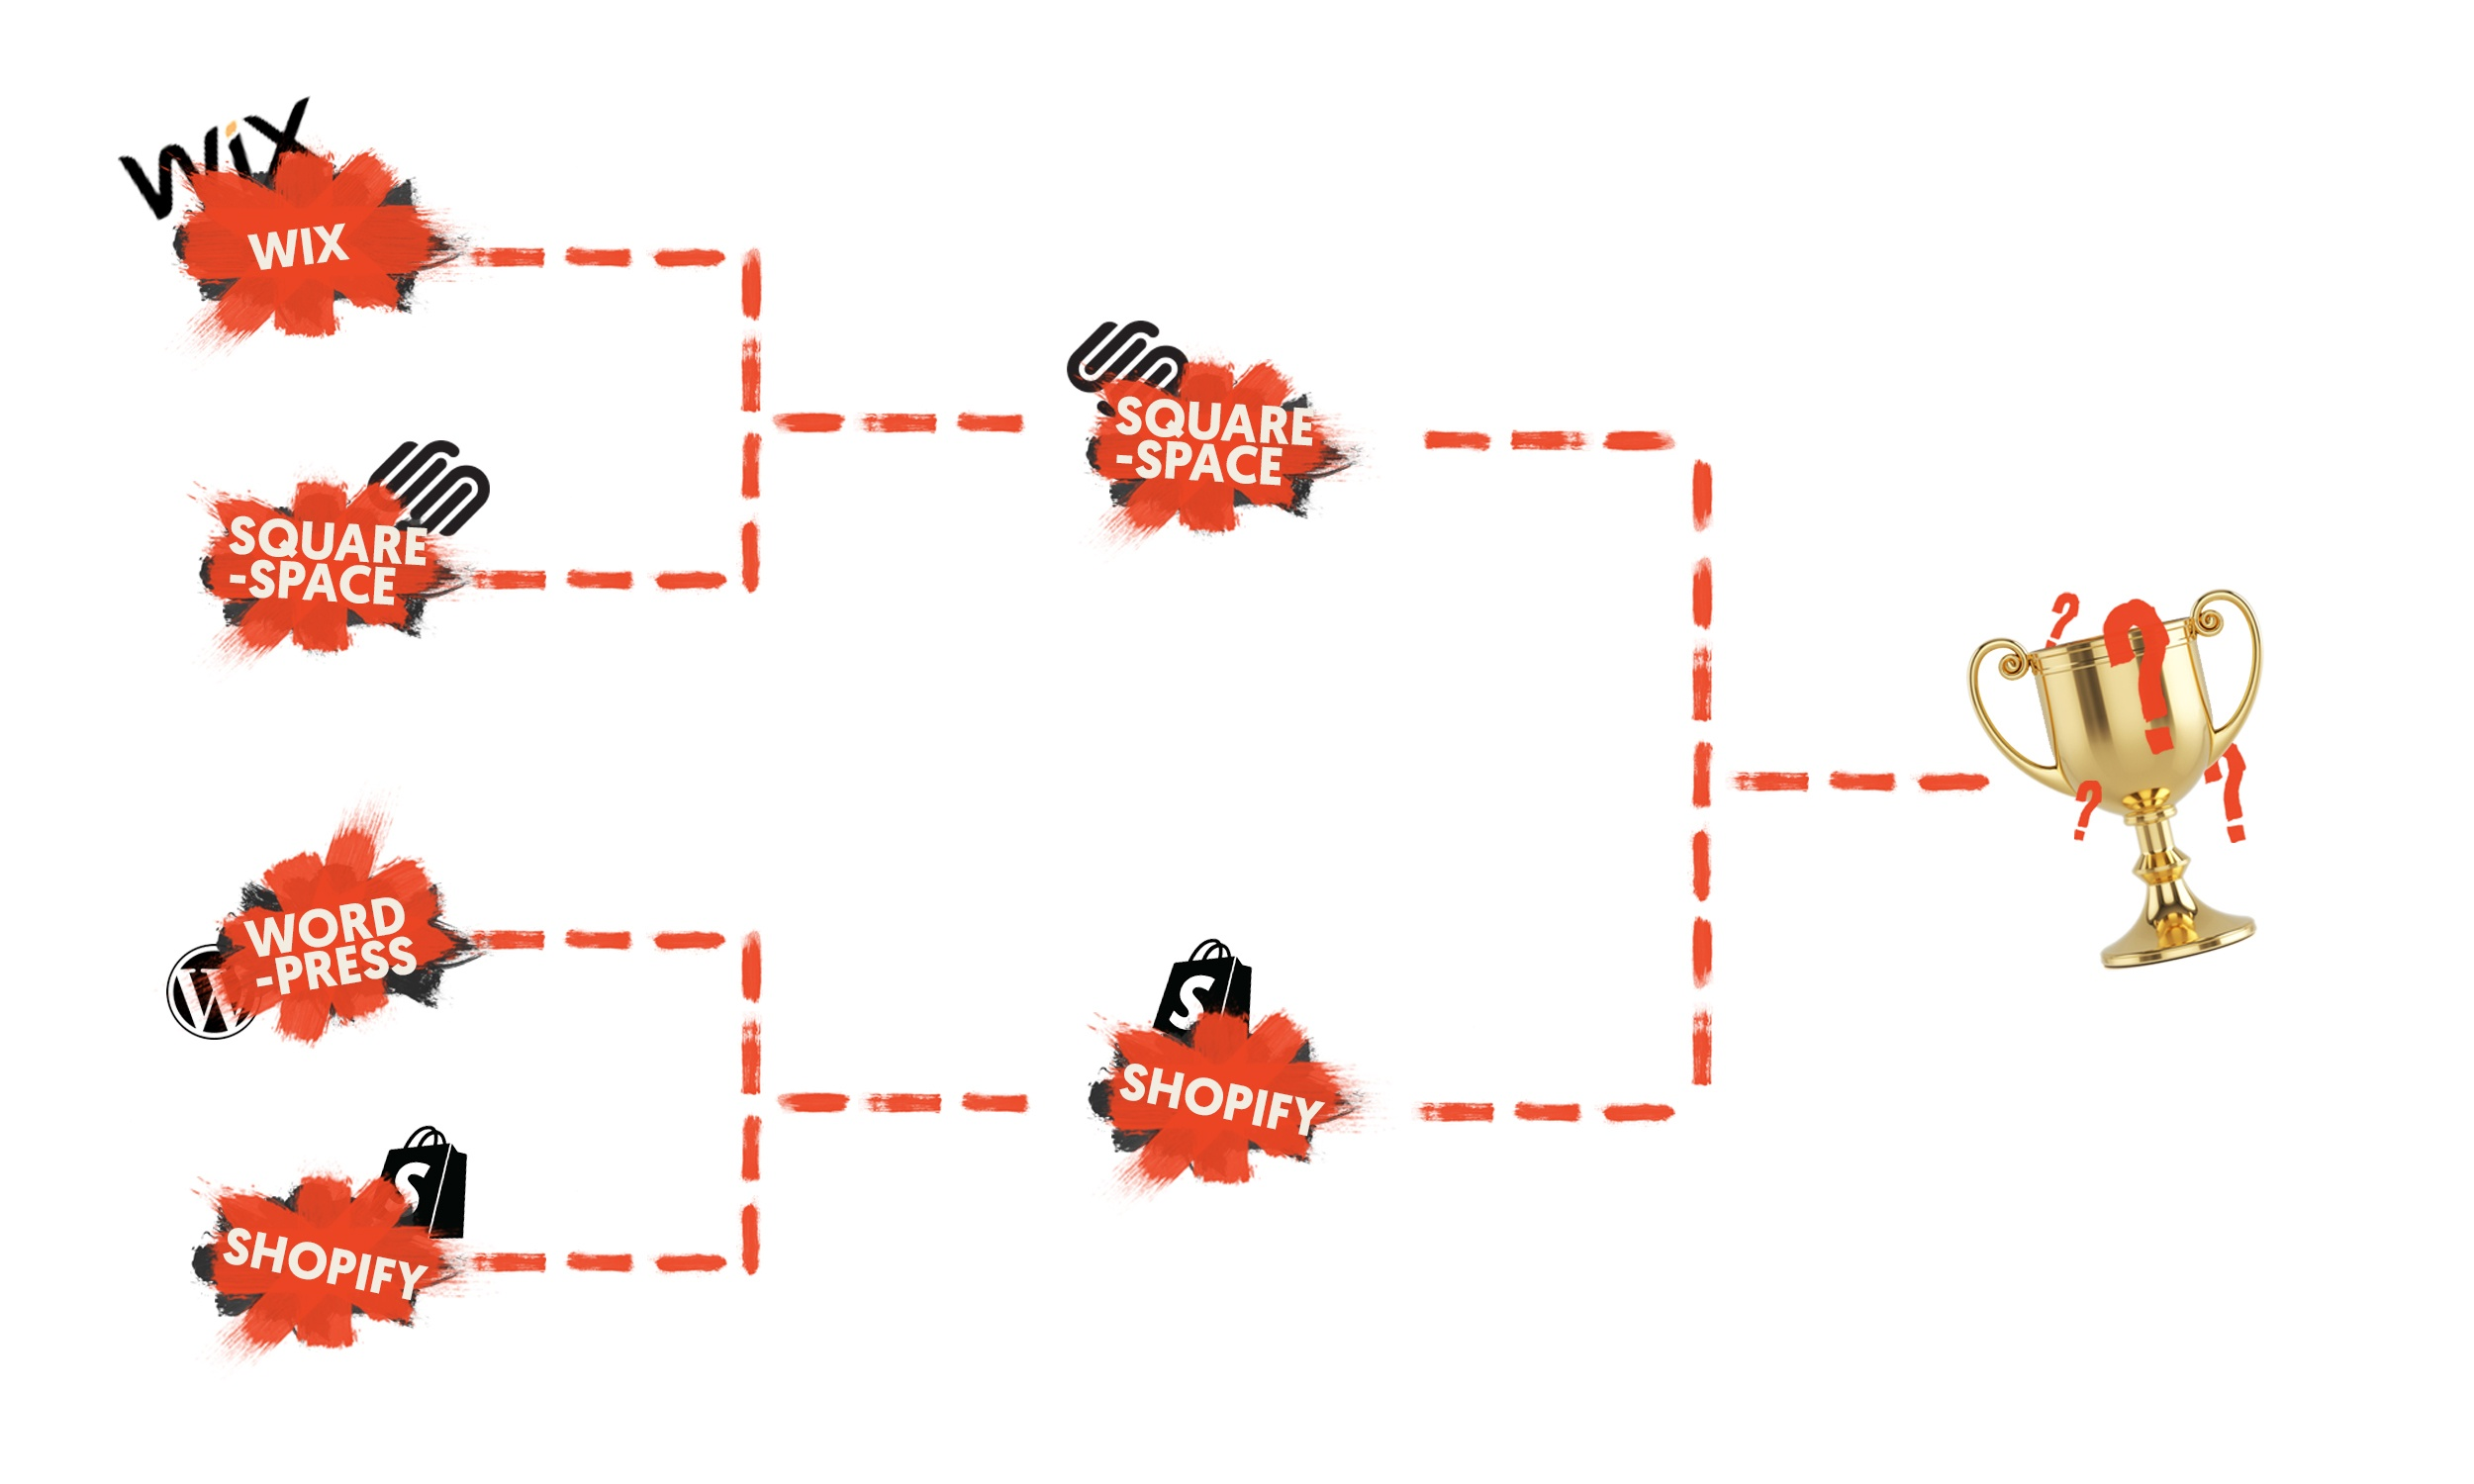 Squarespace vs shopify march_madness_round_2